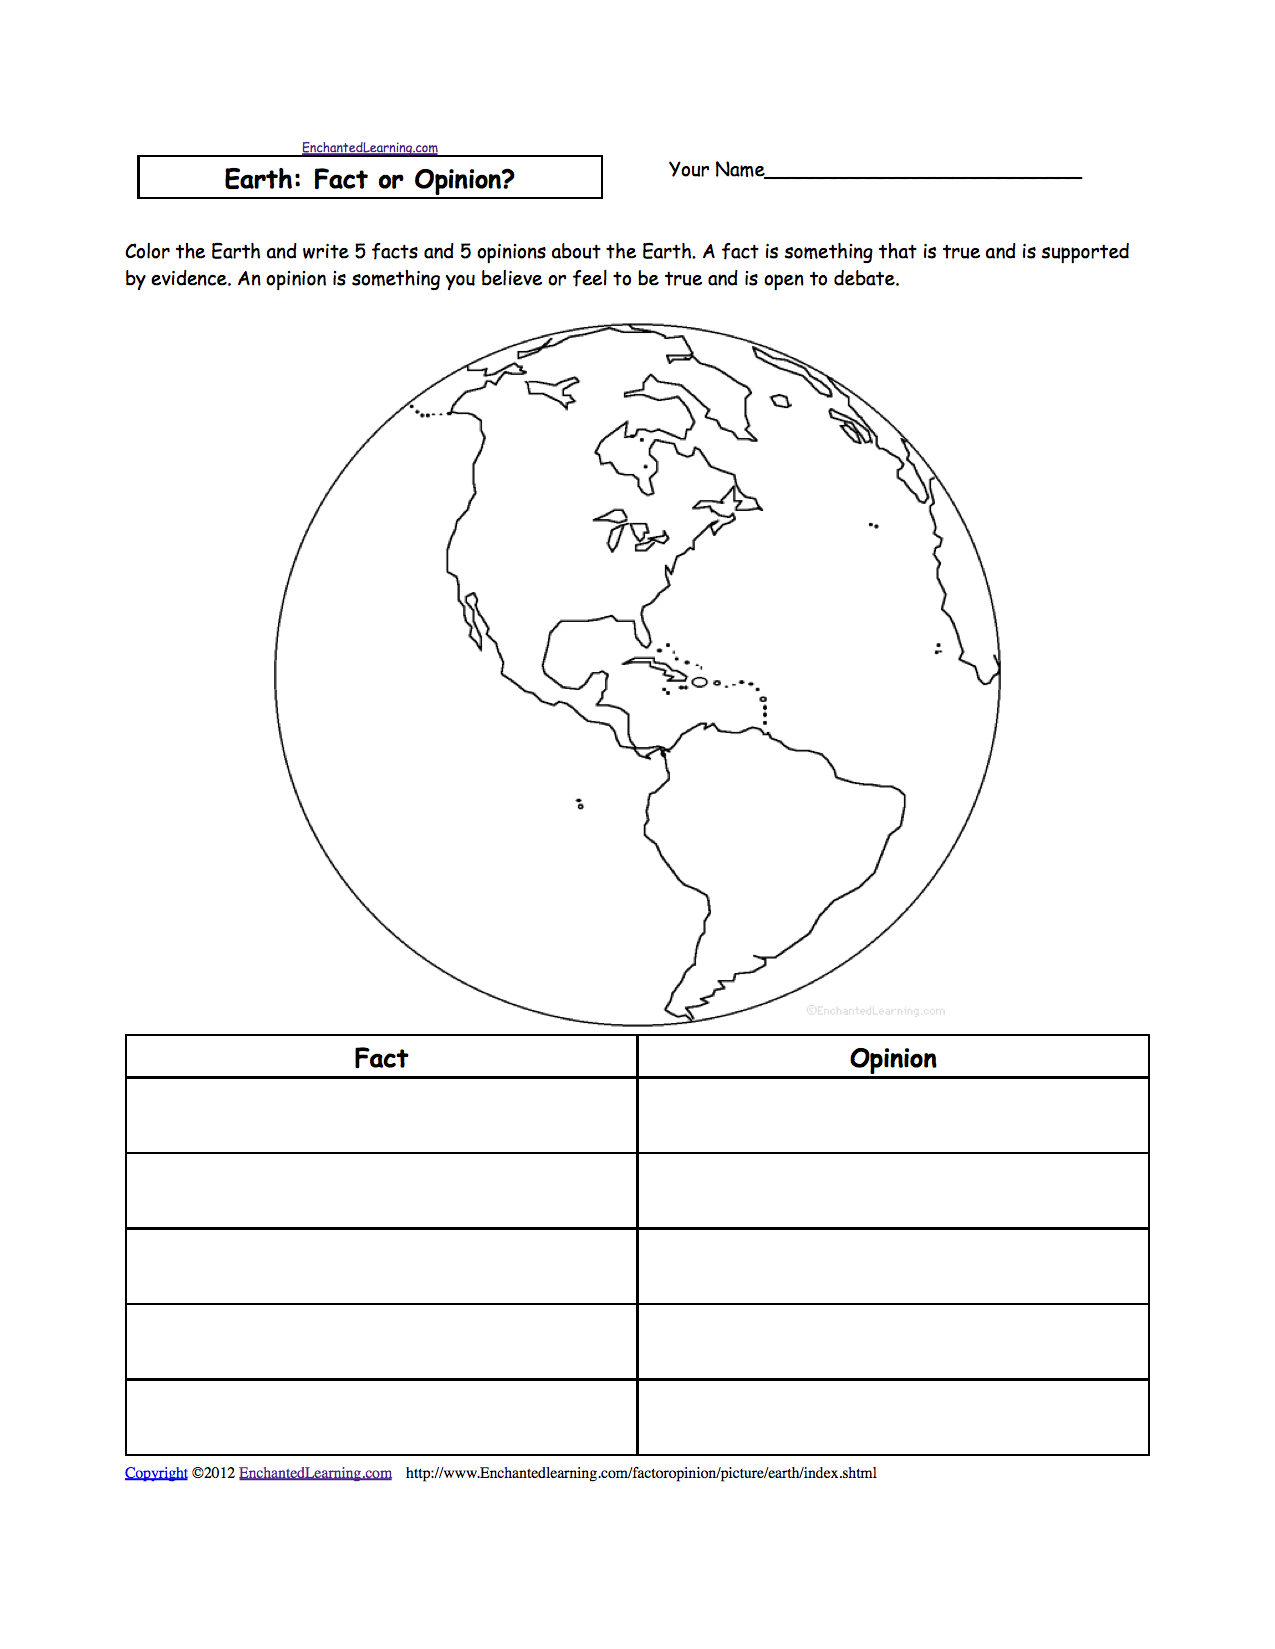 Crafty image intended for earth layers worksheet printable